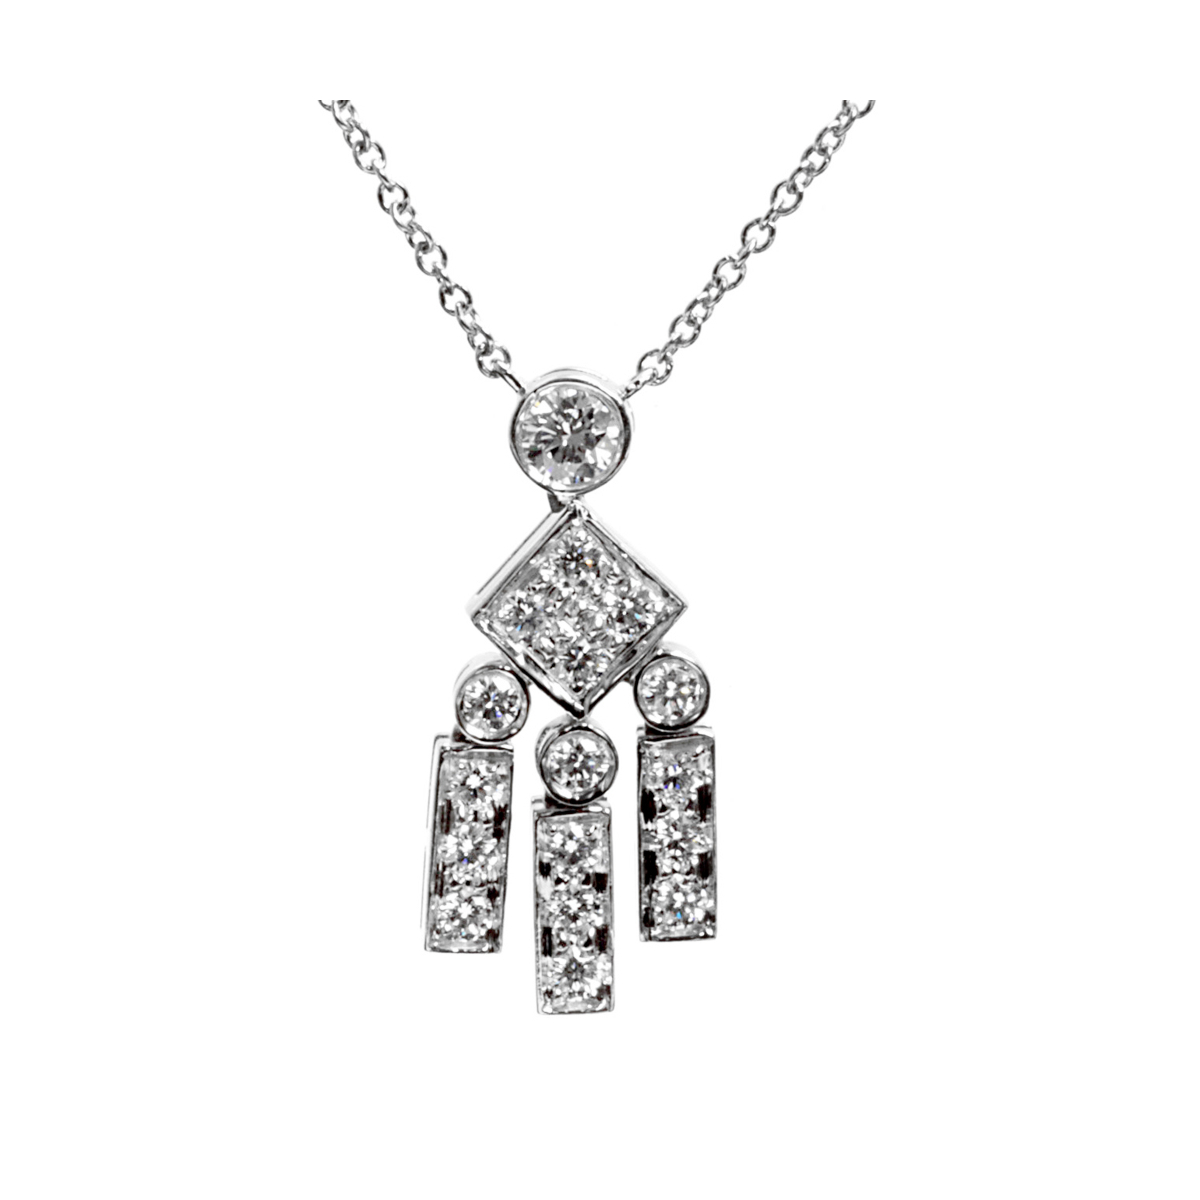 Tiffany & Co Legacy Diamond Platinum Necklace